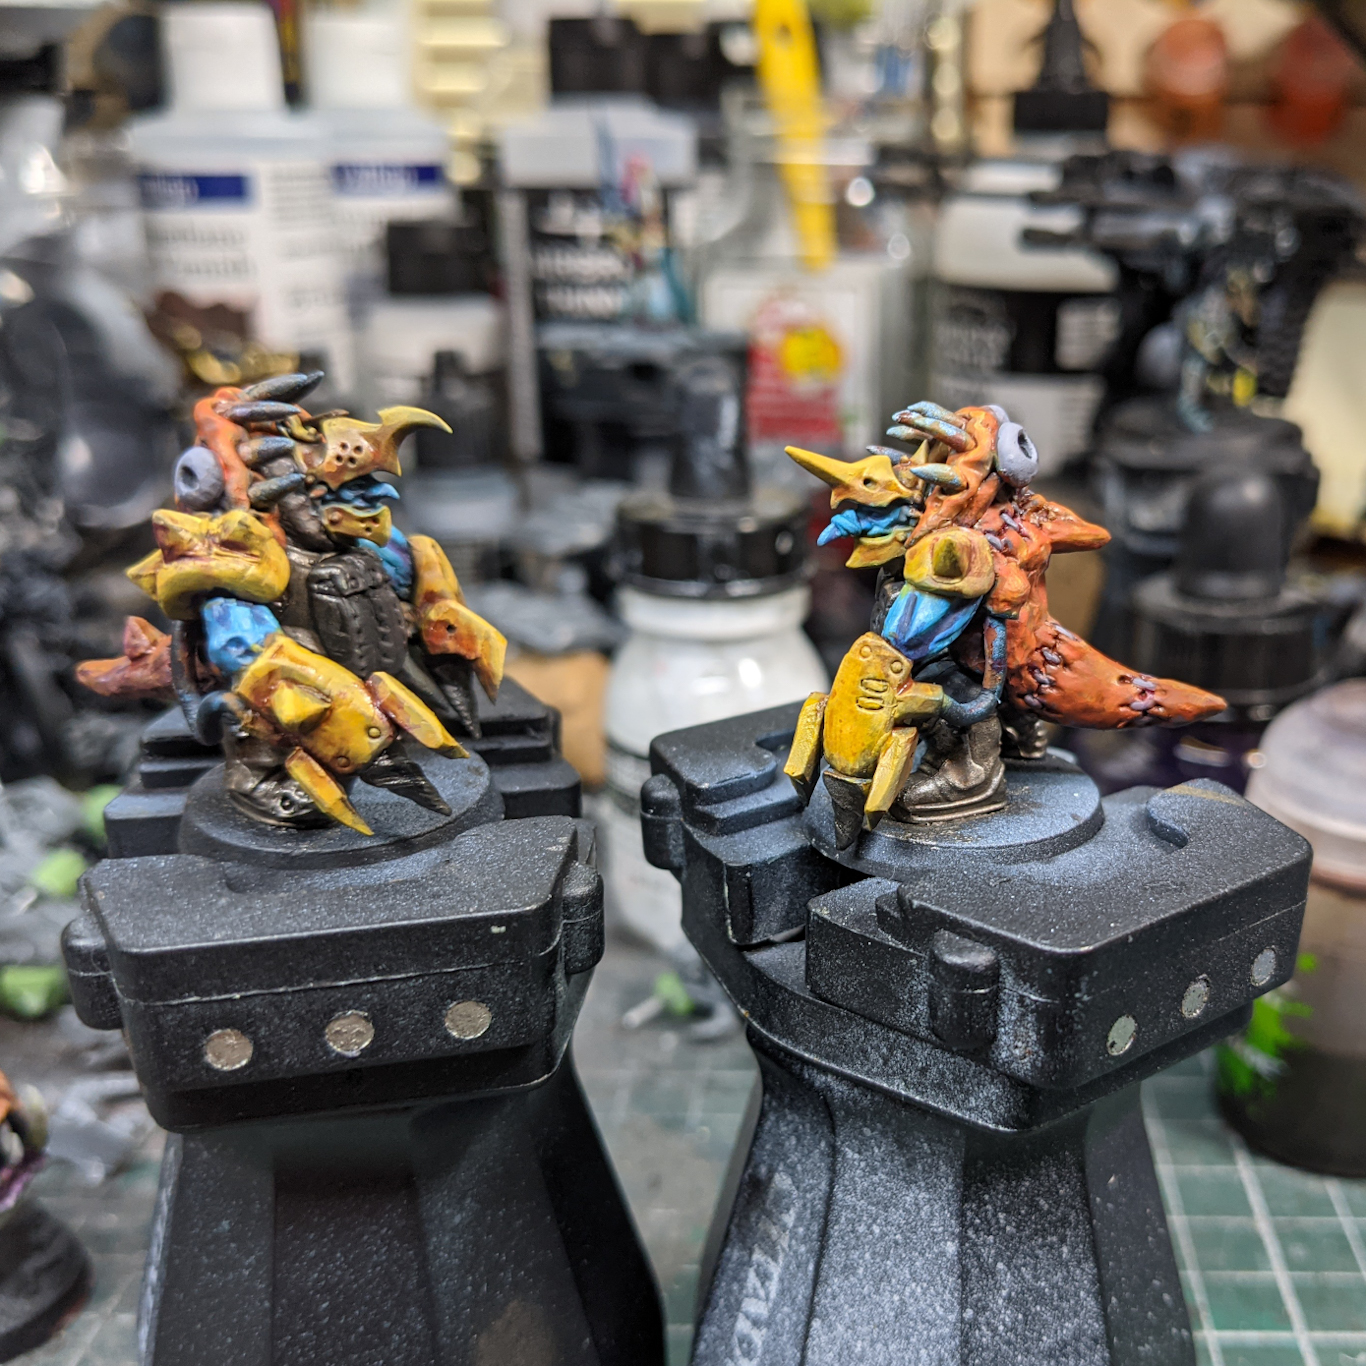 Two converted model Squig Bosses, goblins in yellow exo-suits and fake squig outfits.